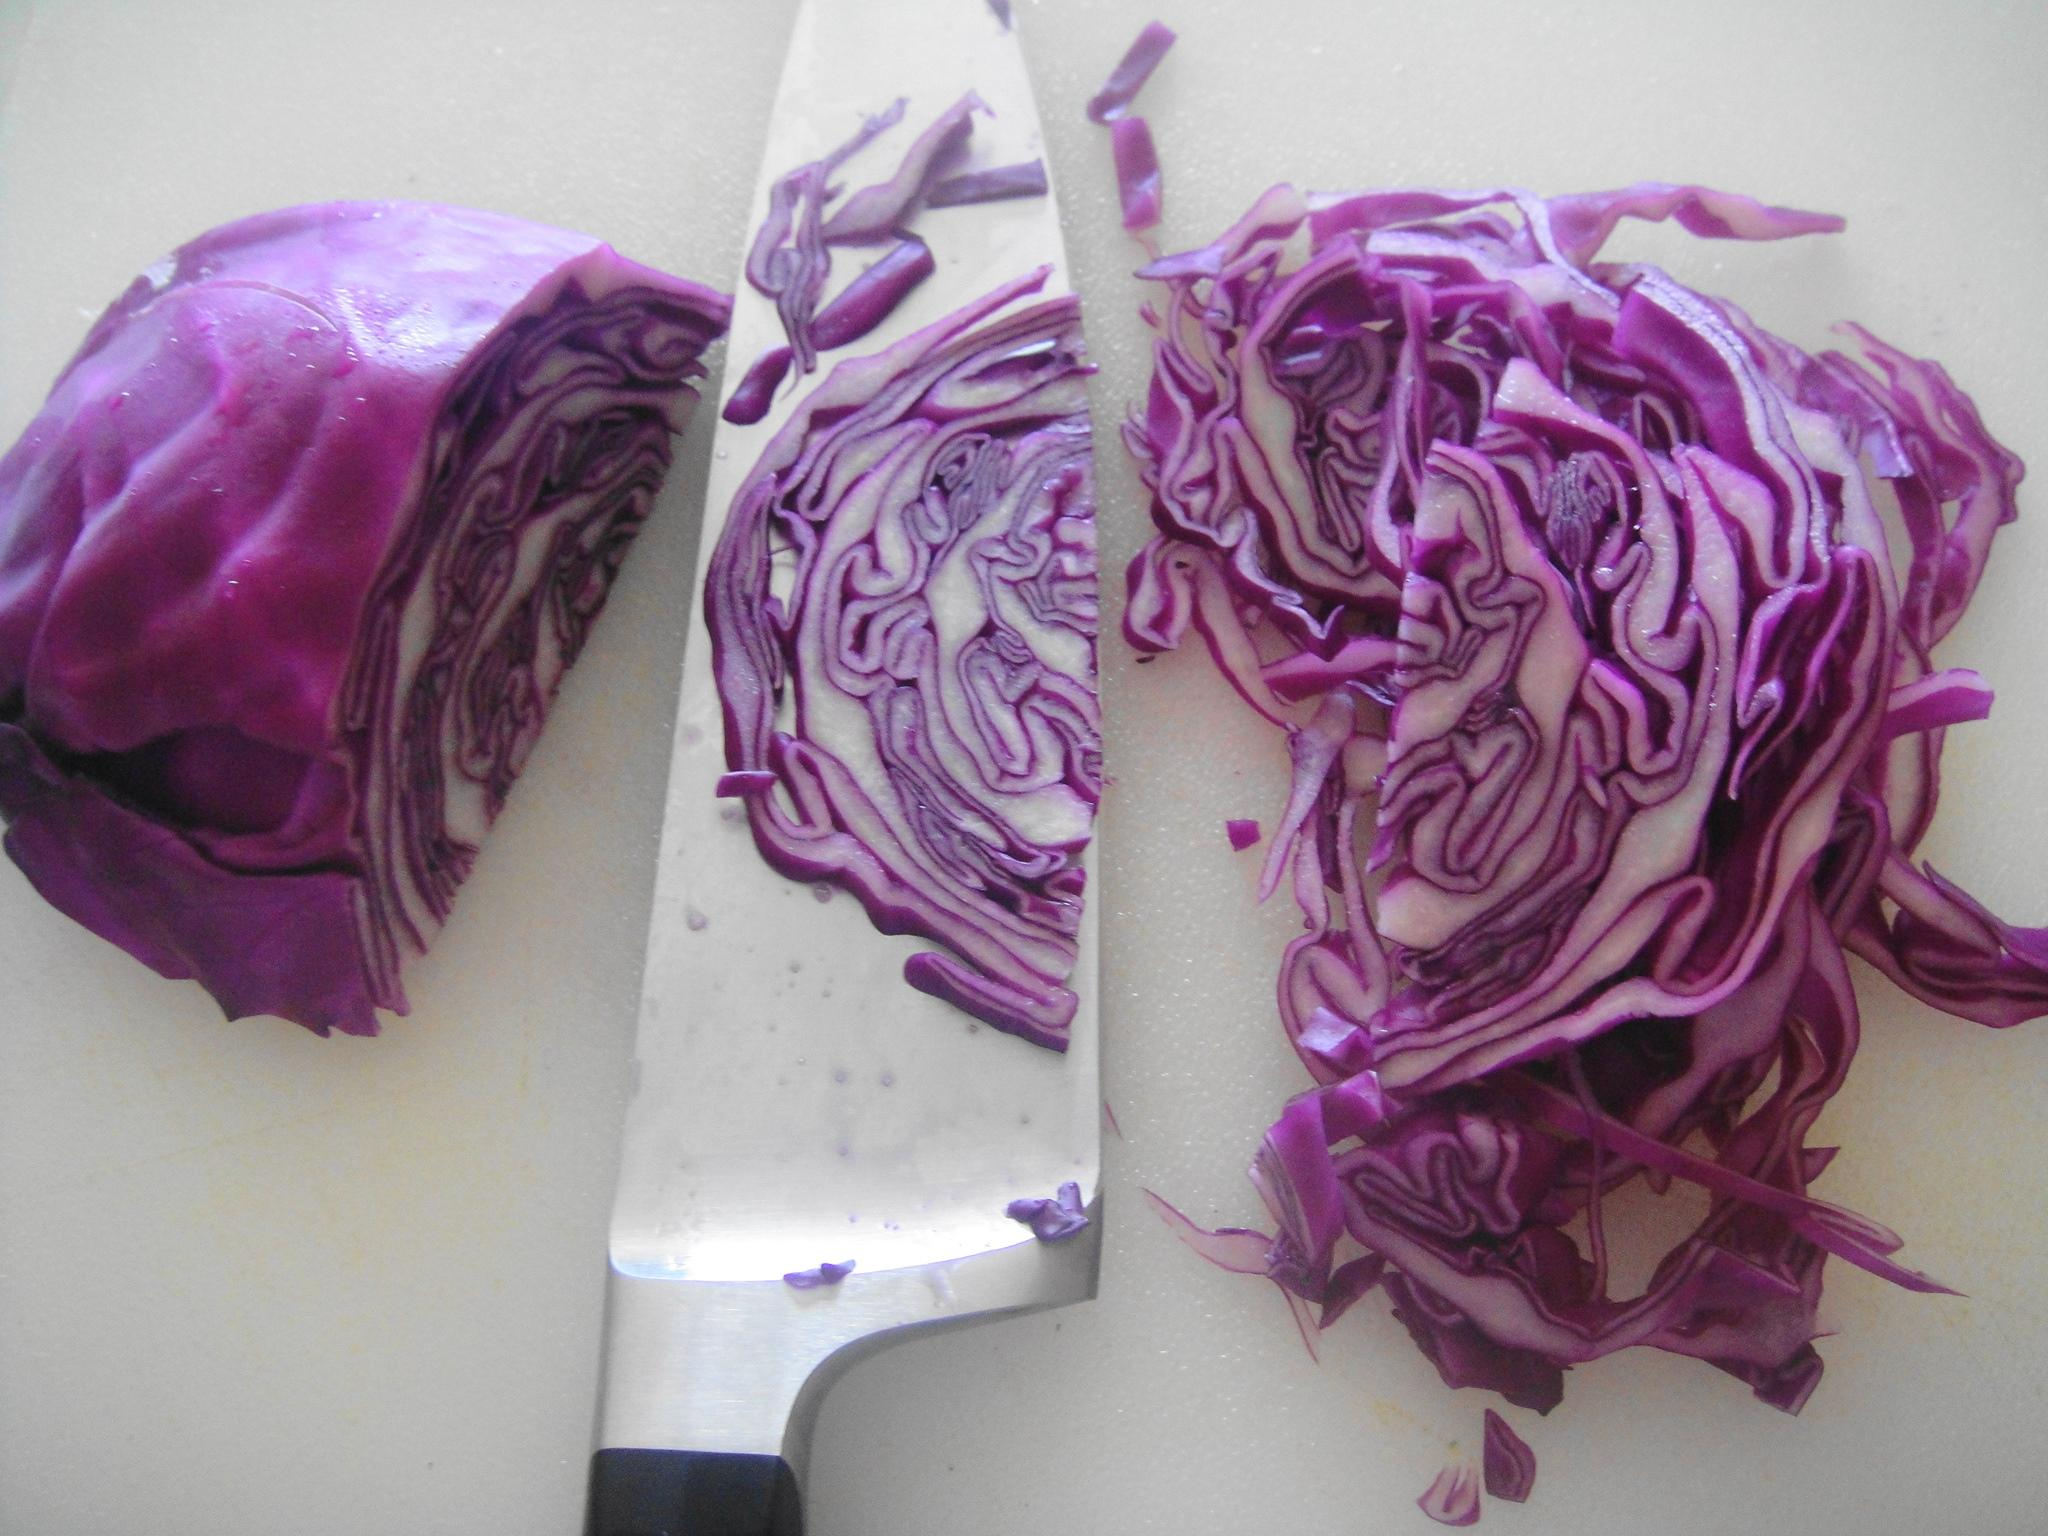 slicing purple cabbage with knife